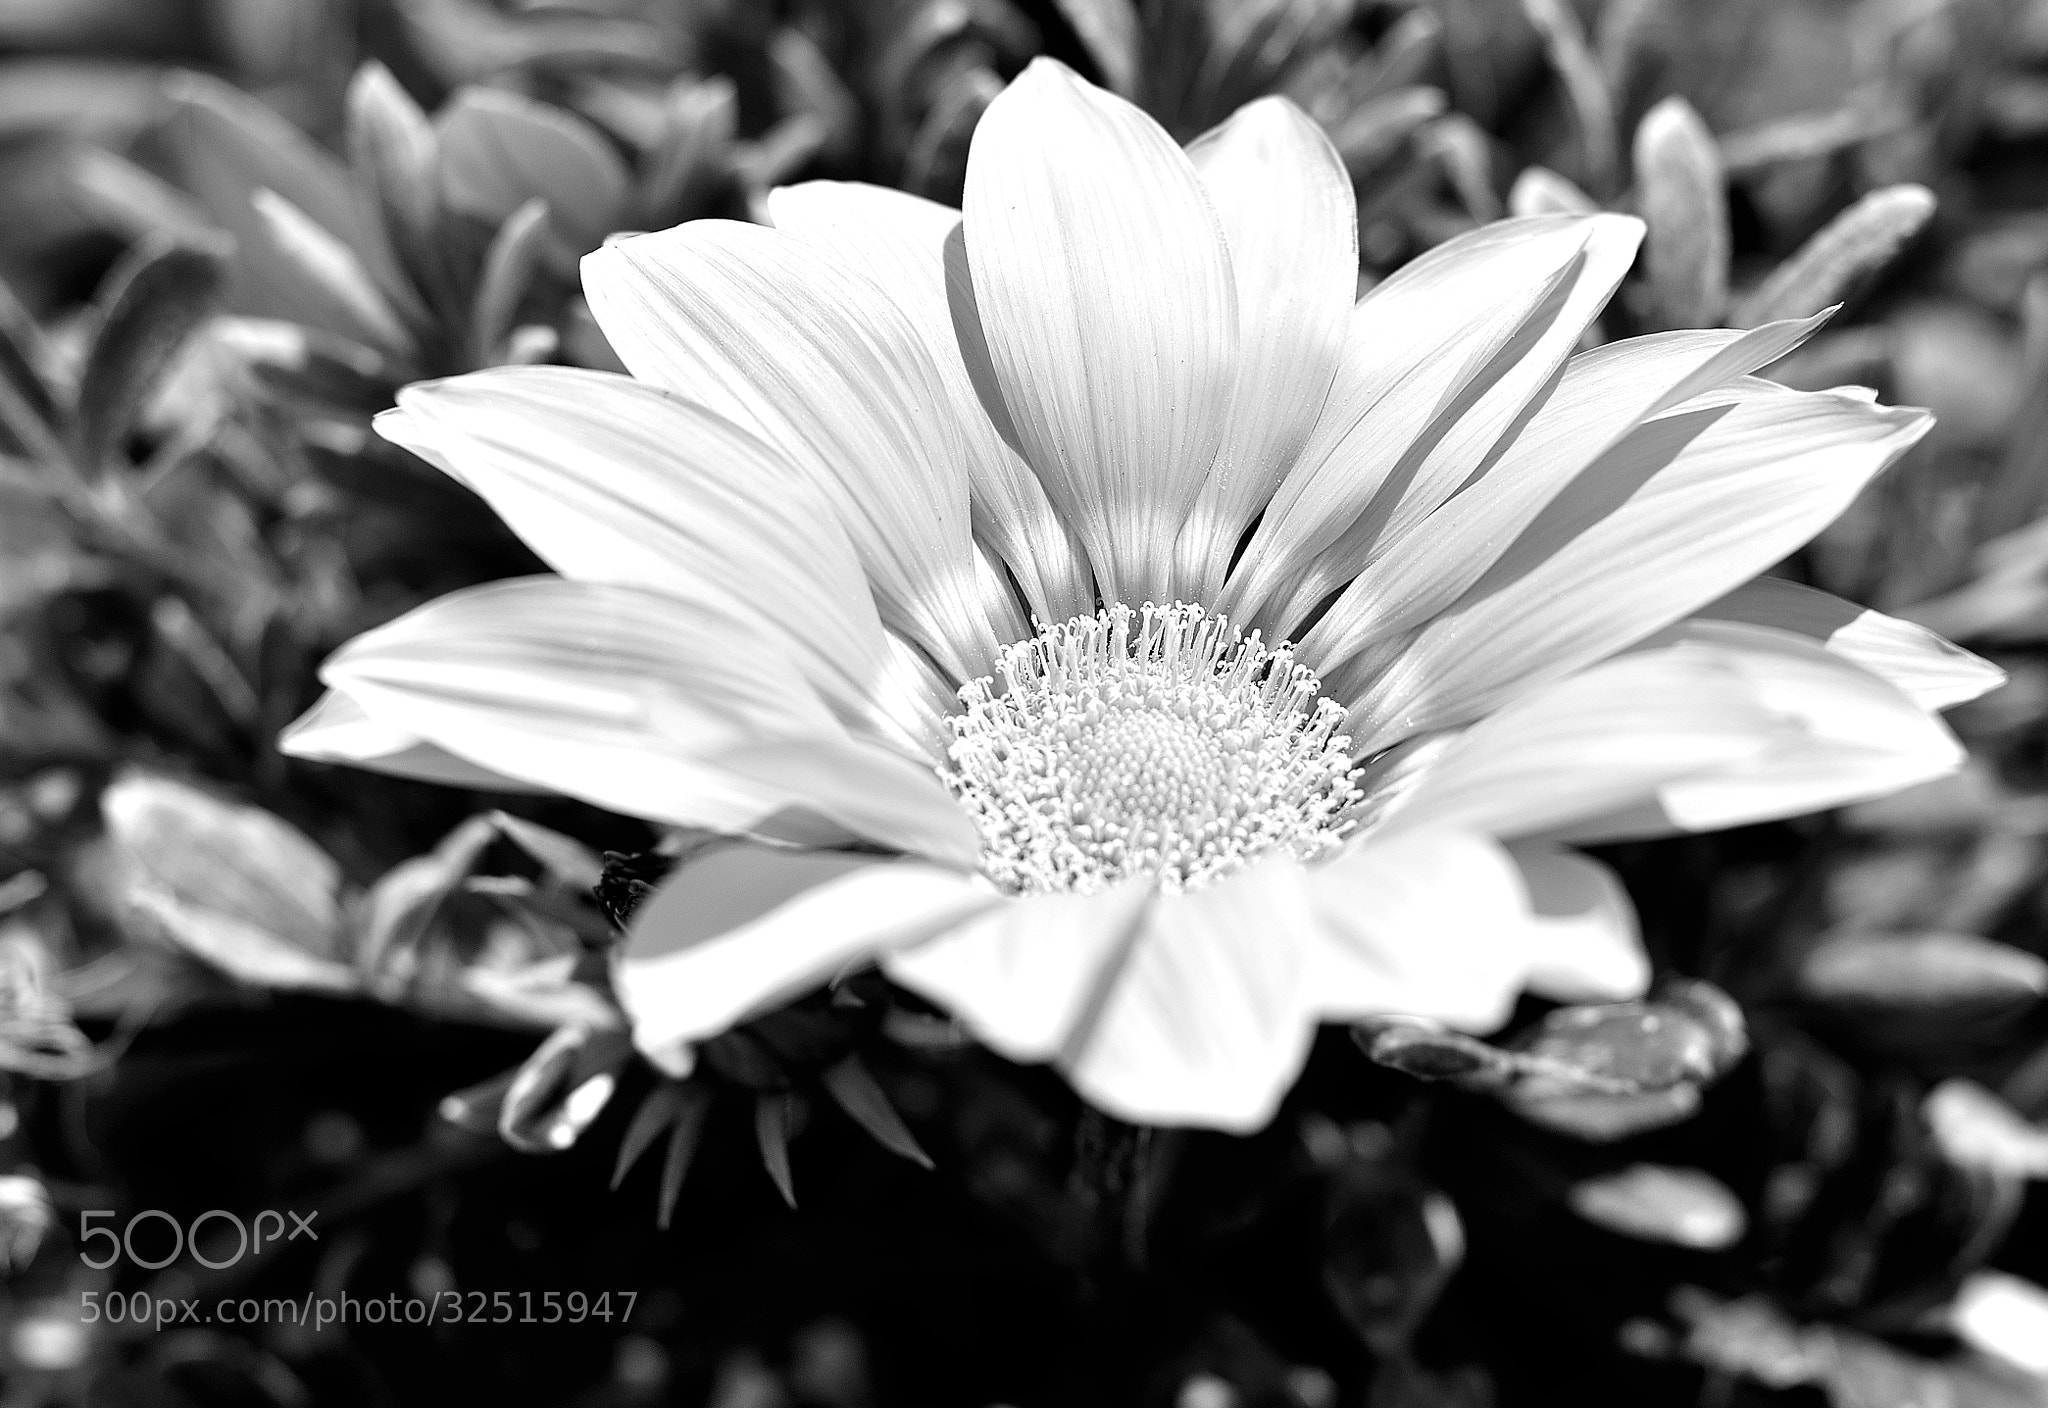 Photograph The sun flower by Patrizio Matteini on 500px